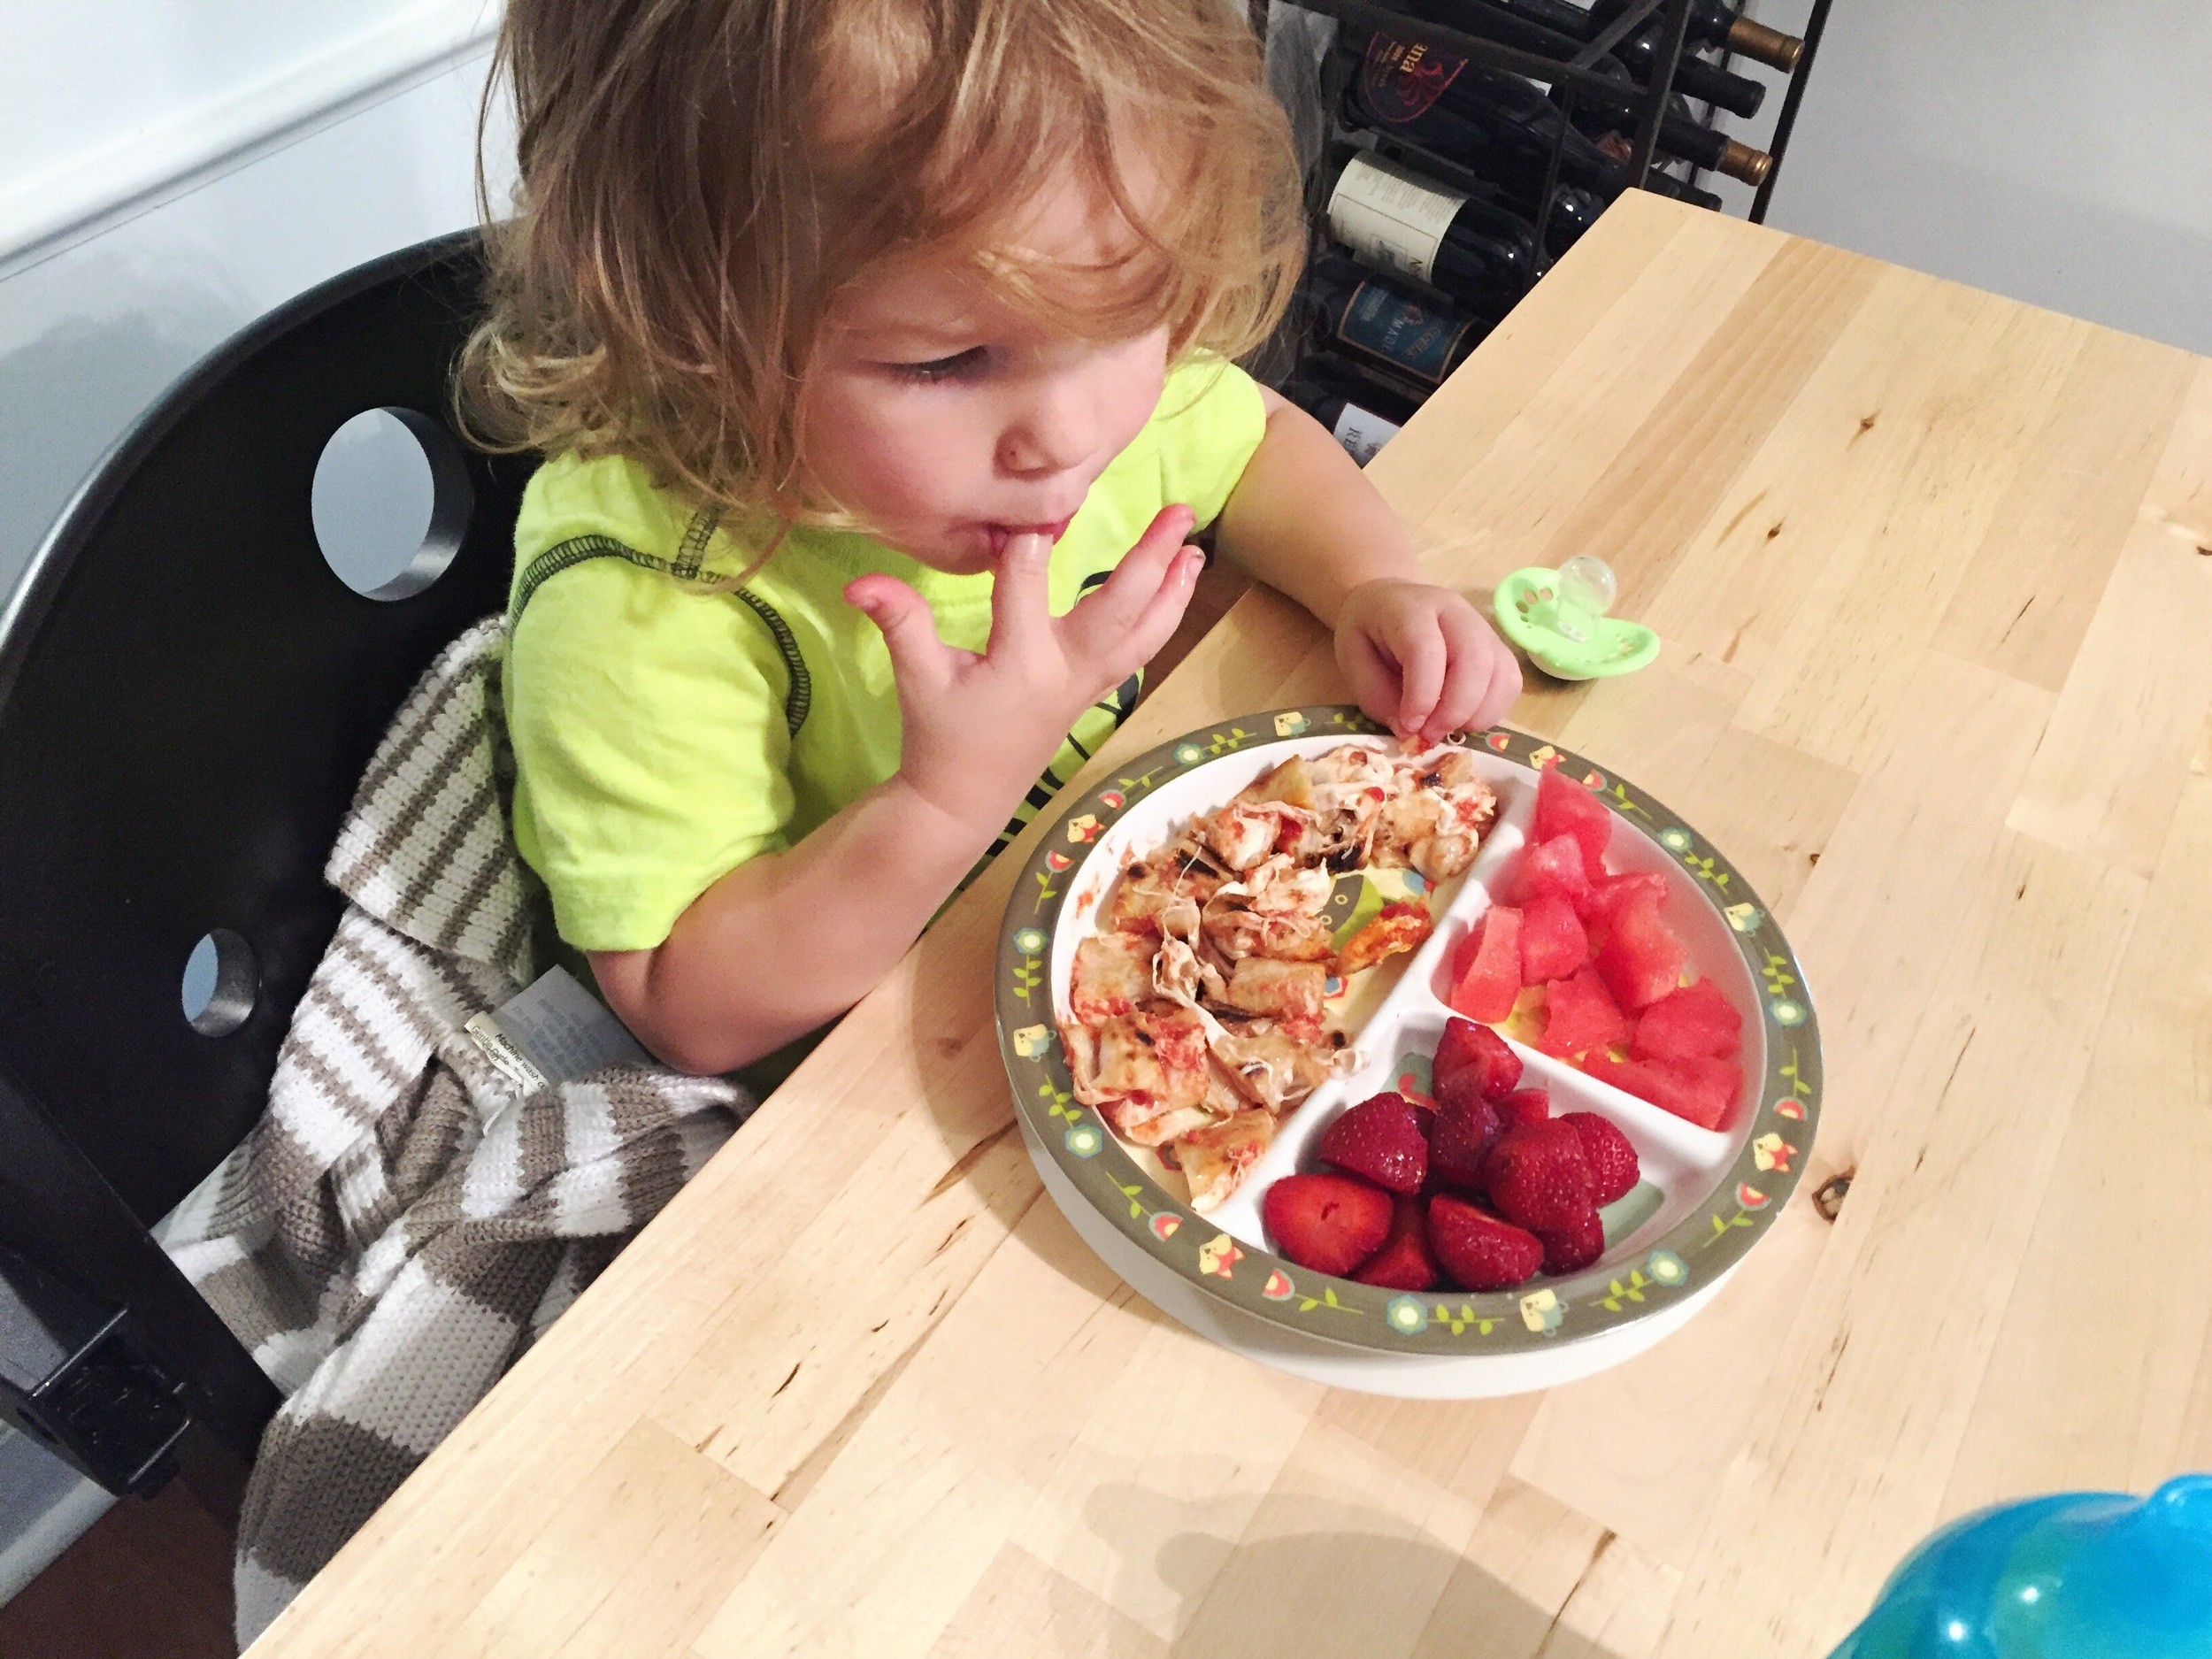 A rare quiet moment- he had his three favorite foods: Pizza, Strawberries, and Watermelon